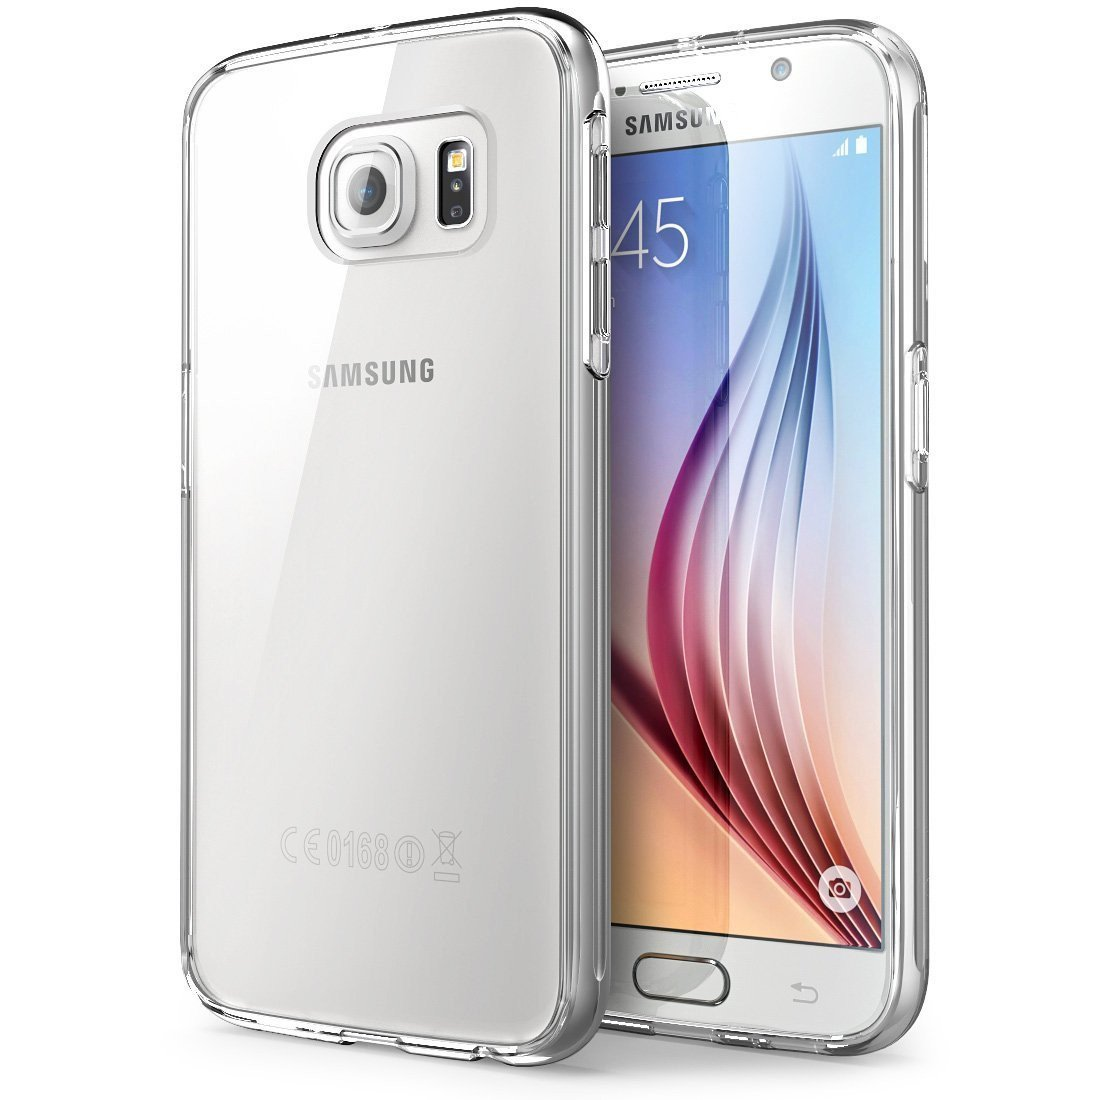 EQUAL Gel Case - Samsung Galaxy S6